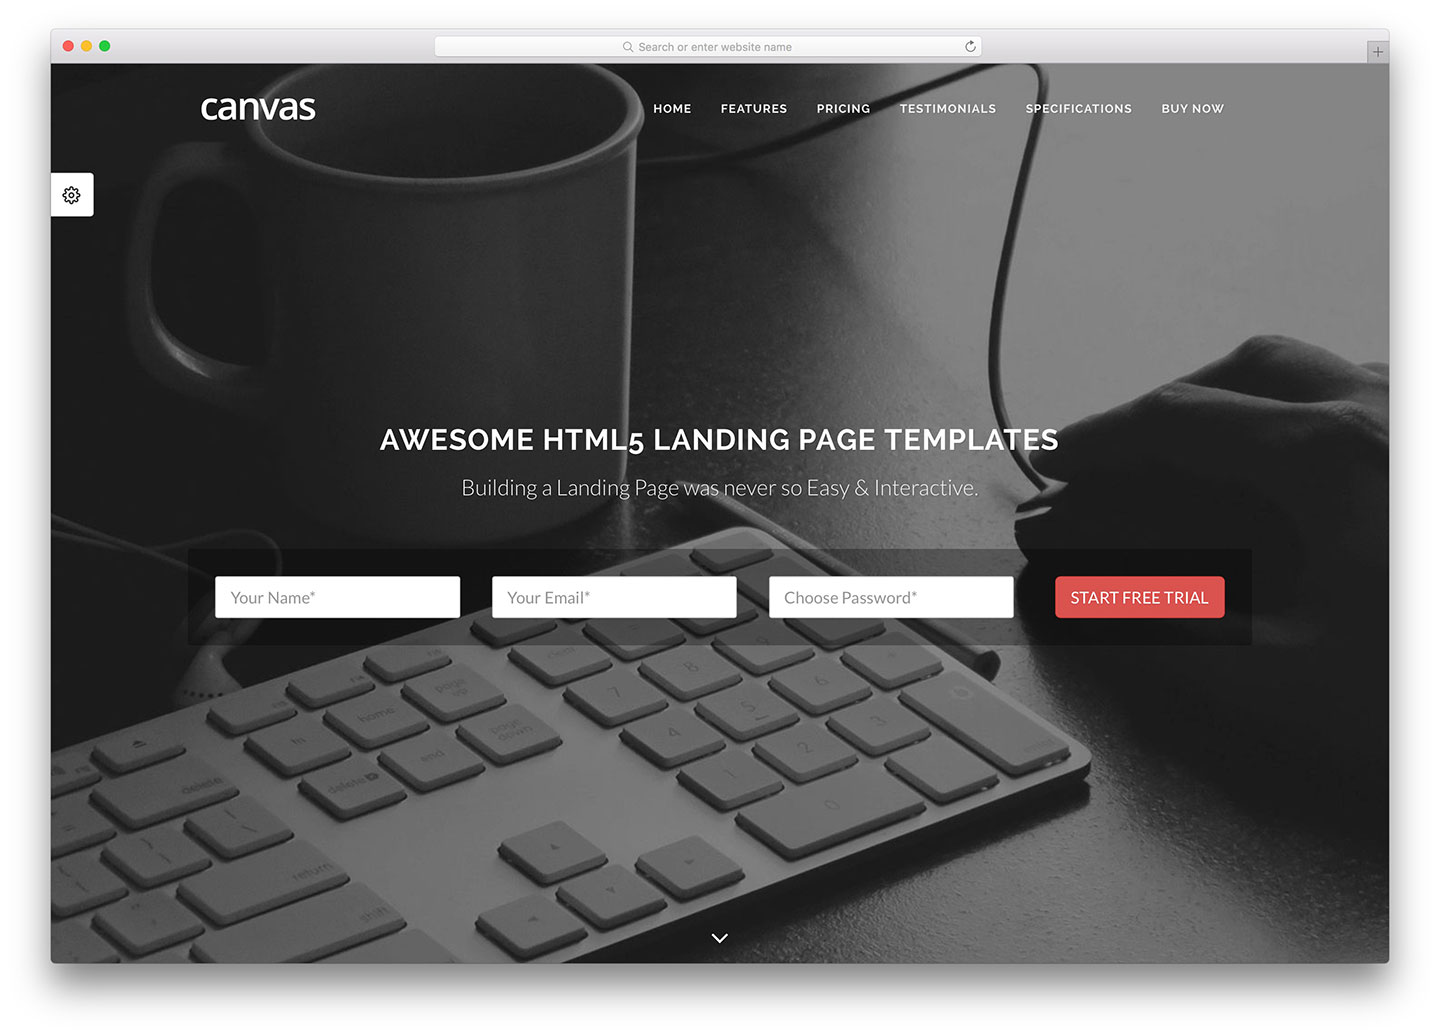 22 Awesome HTML5 Landing Page Templates 2018 - Colorlib